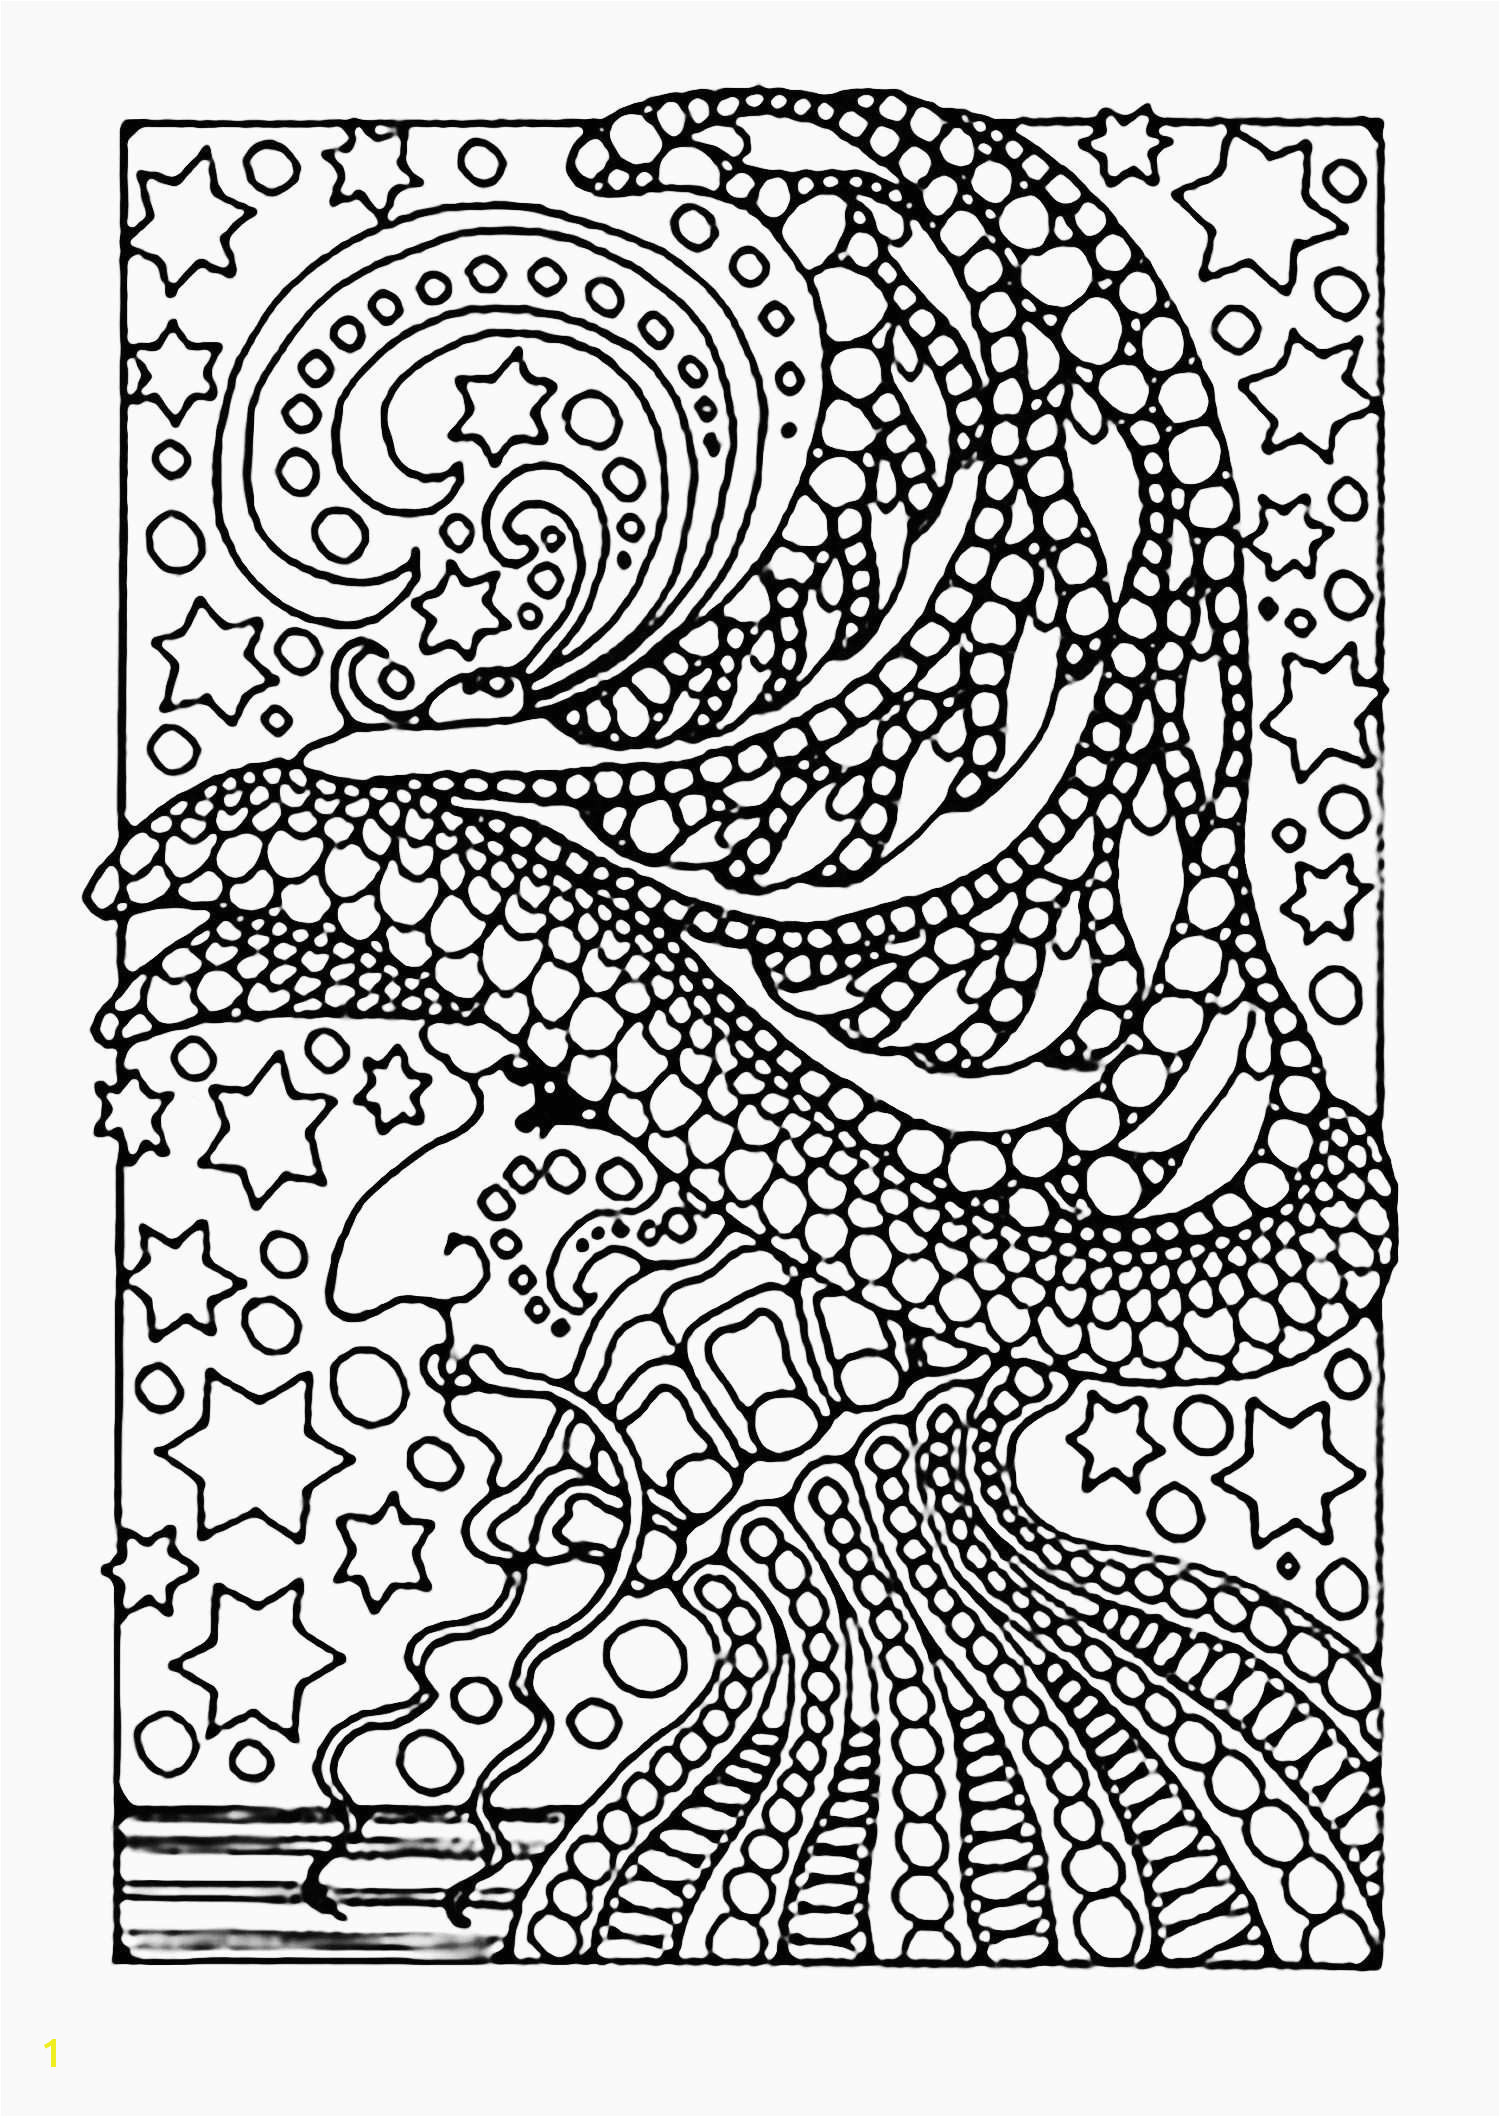 Free Fall Coloring Pages for Preschoolers Inspirational Free Fall Coloring Pages for Preschoolers New New Printable